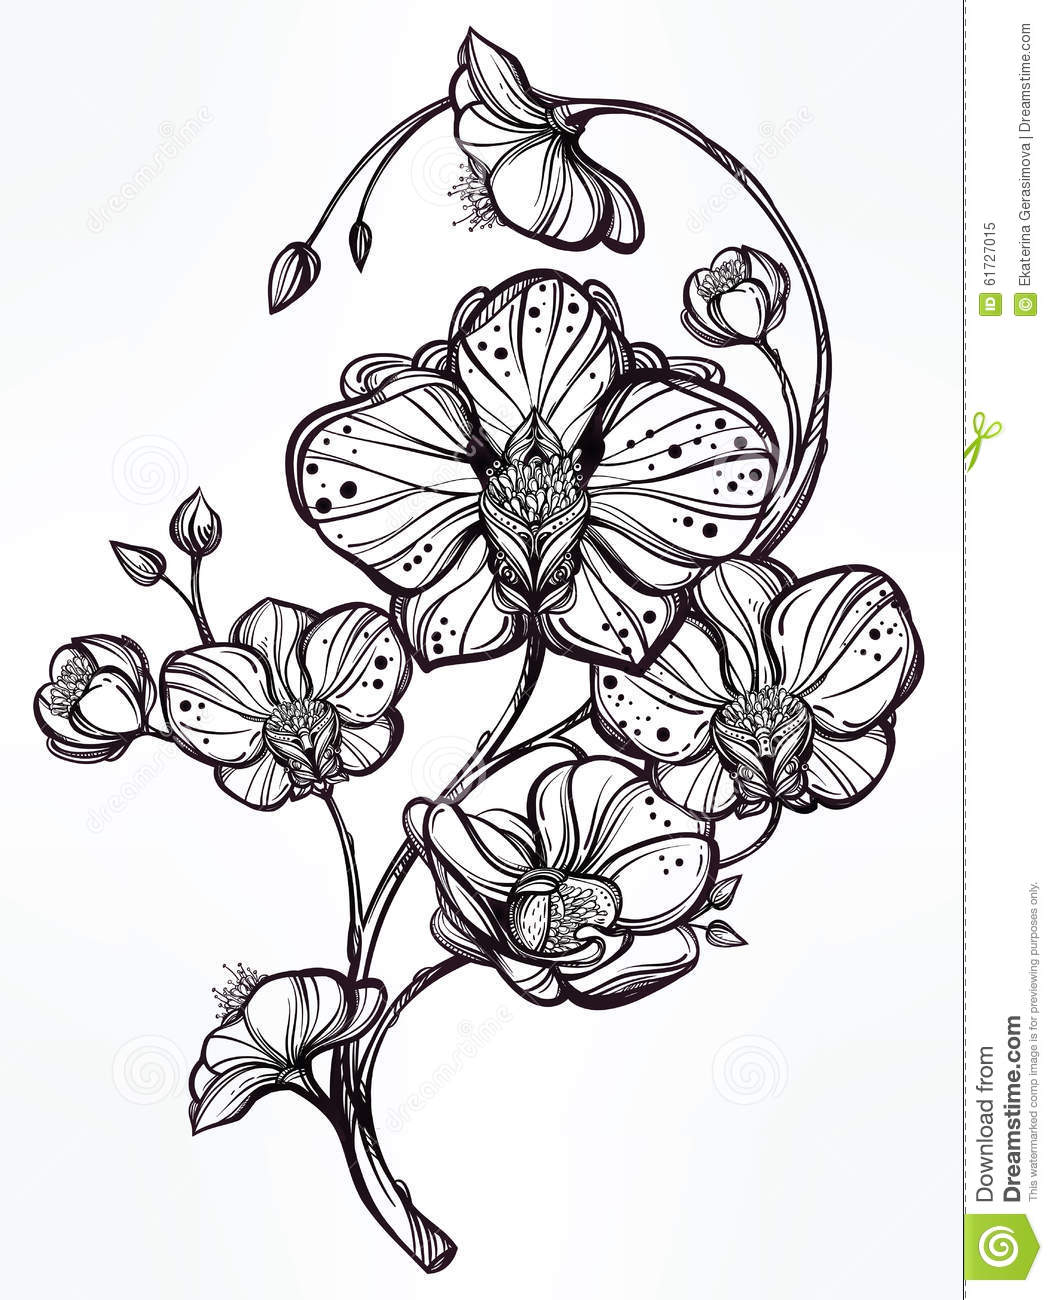 Illustration Of Dicot With Petals